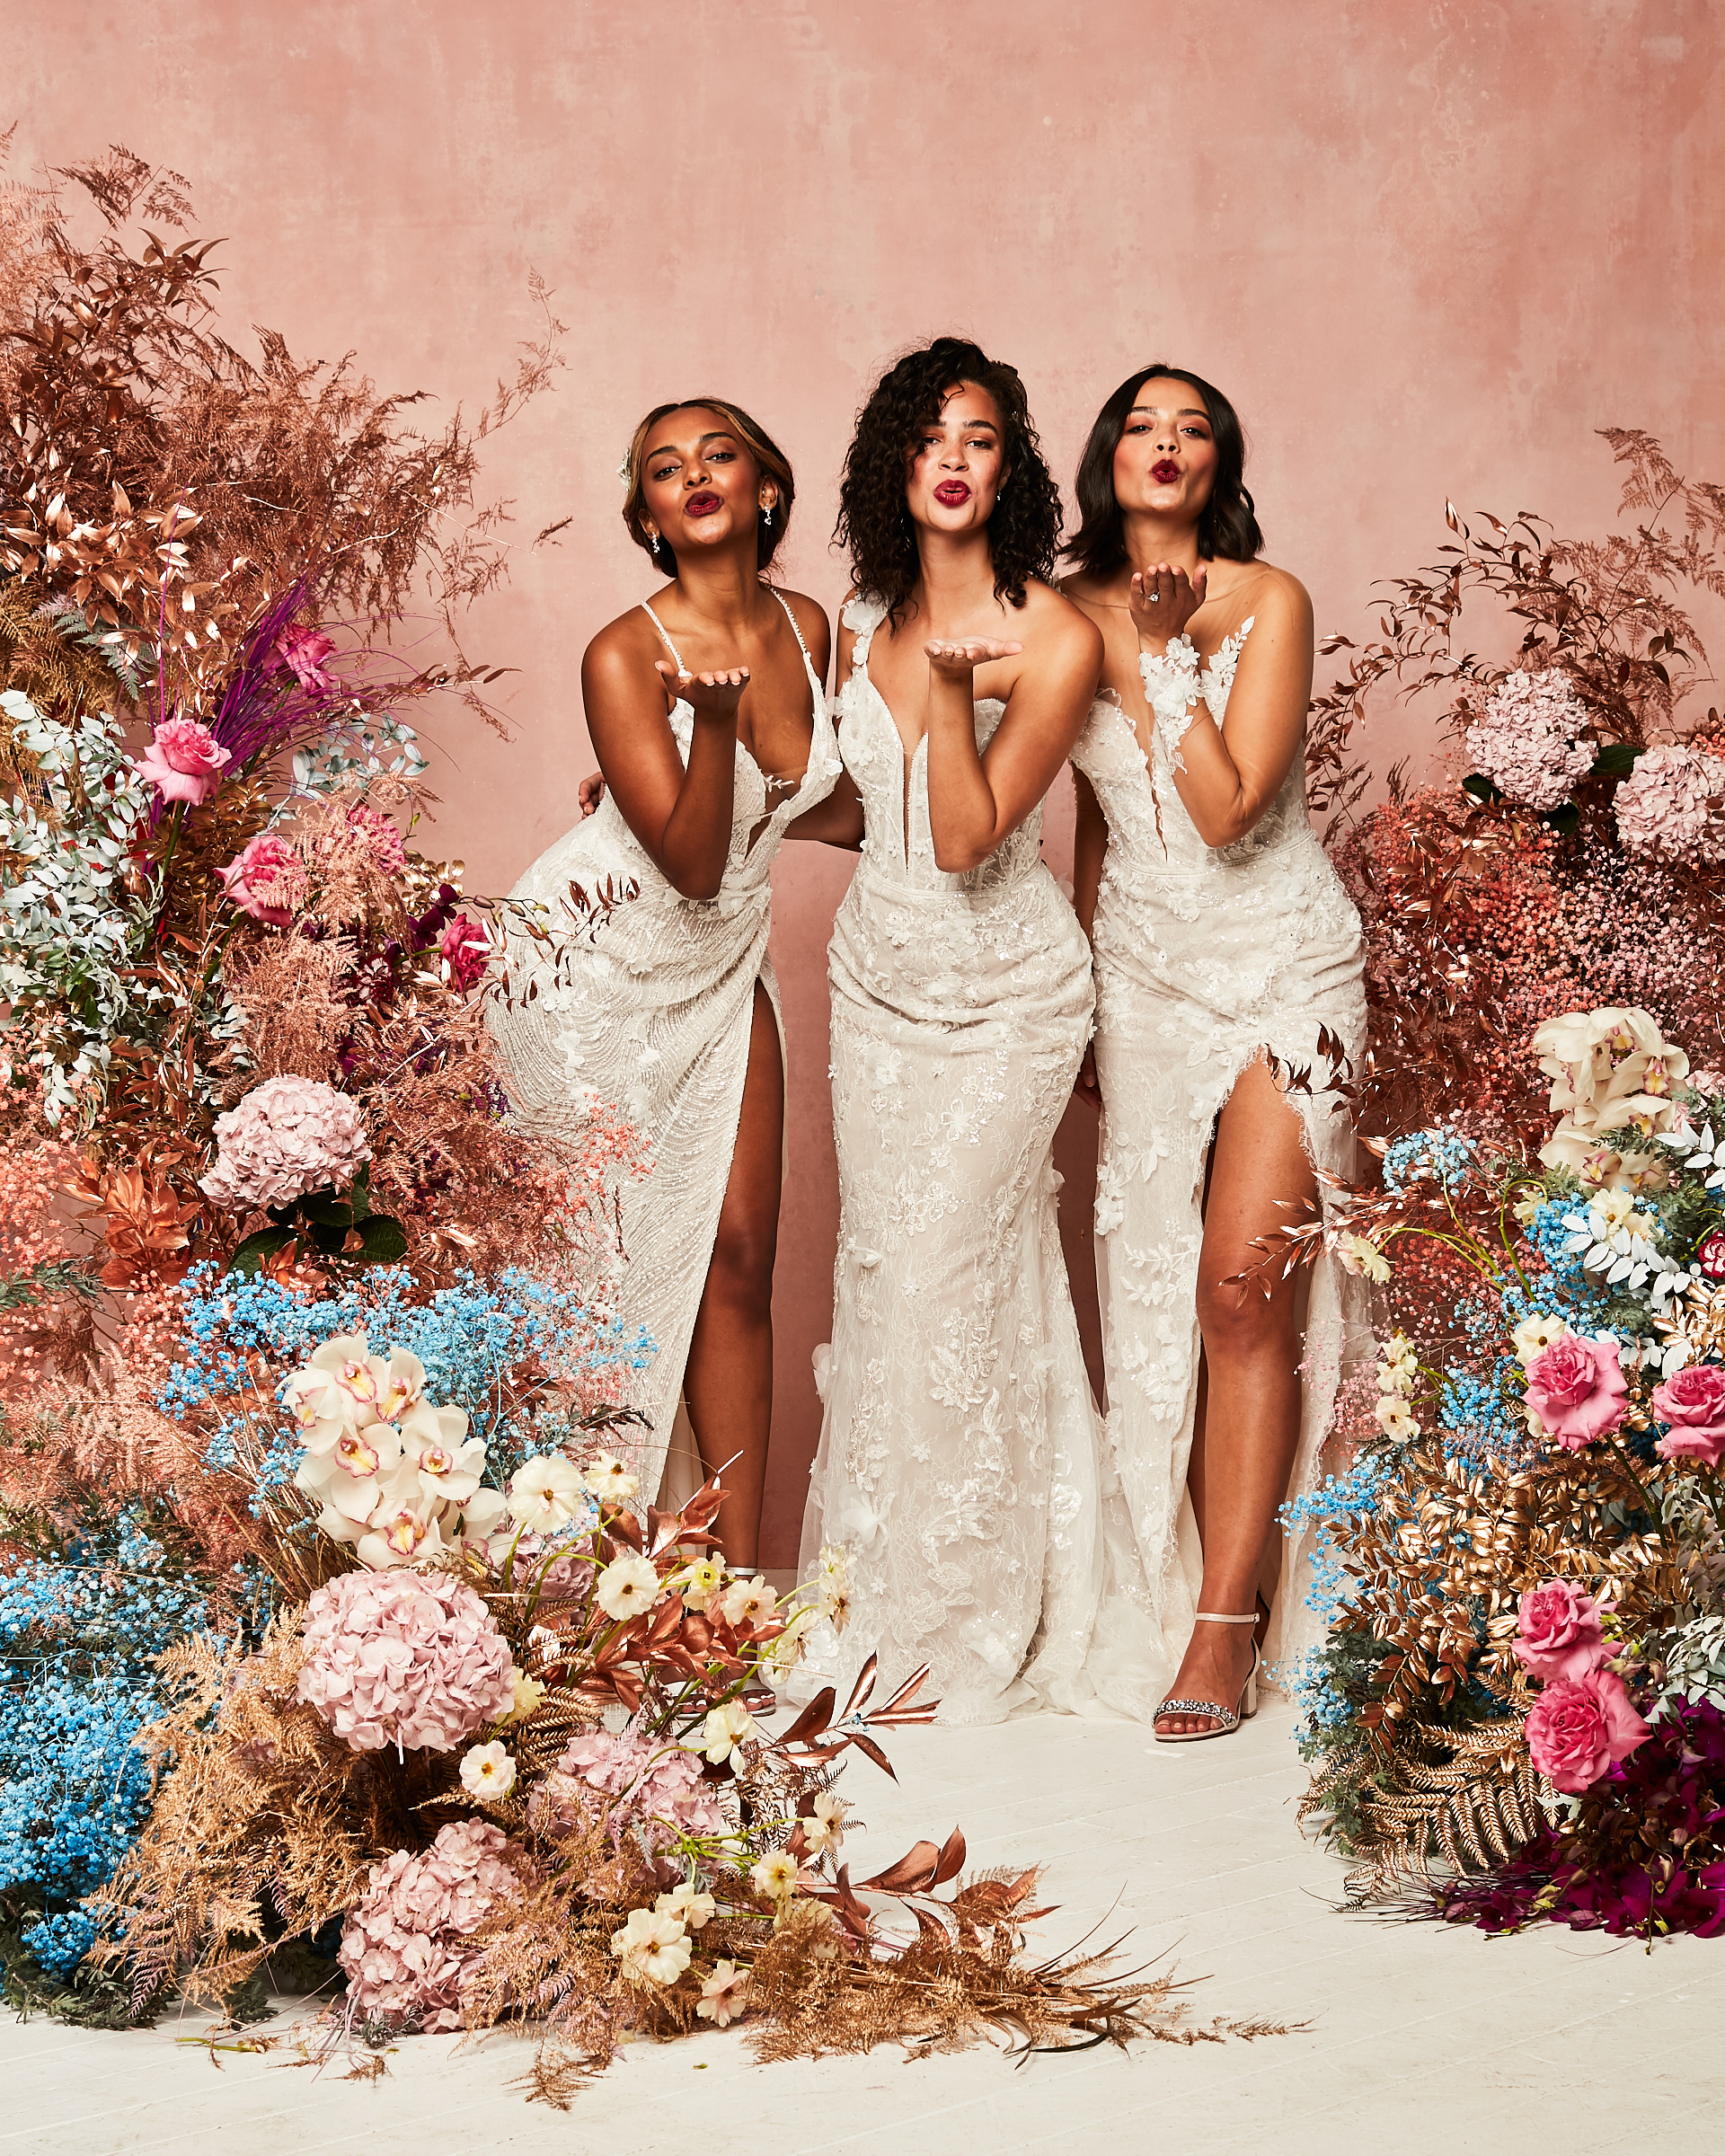 Three women modeling white David's Bridal spring 2021 collection dresses gowns and blowing kisses at the camera